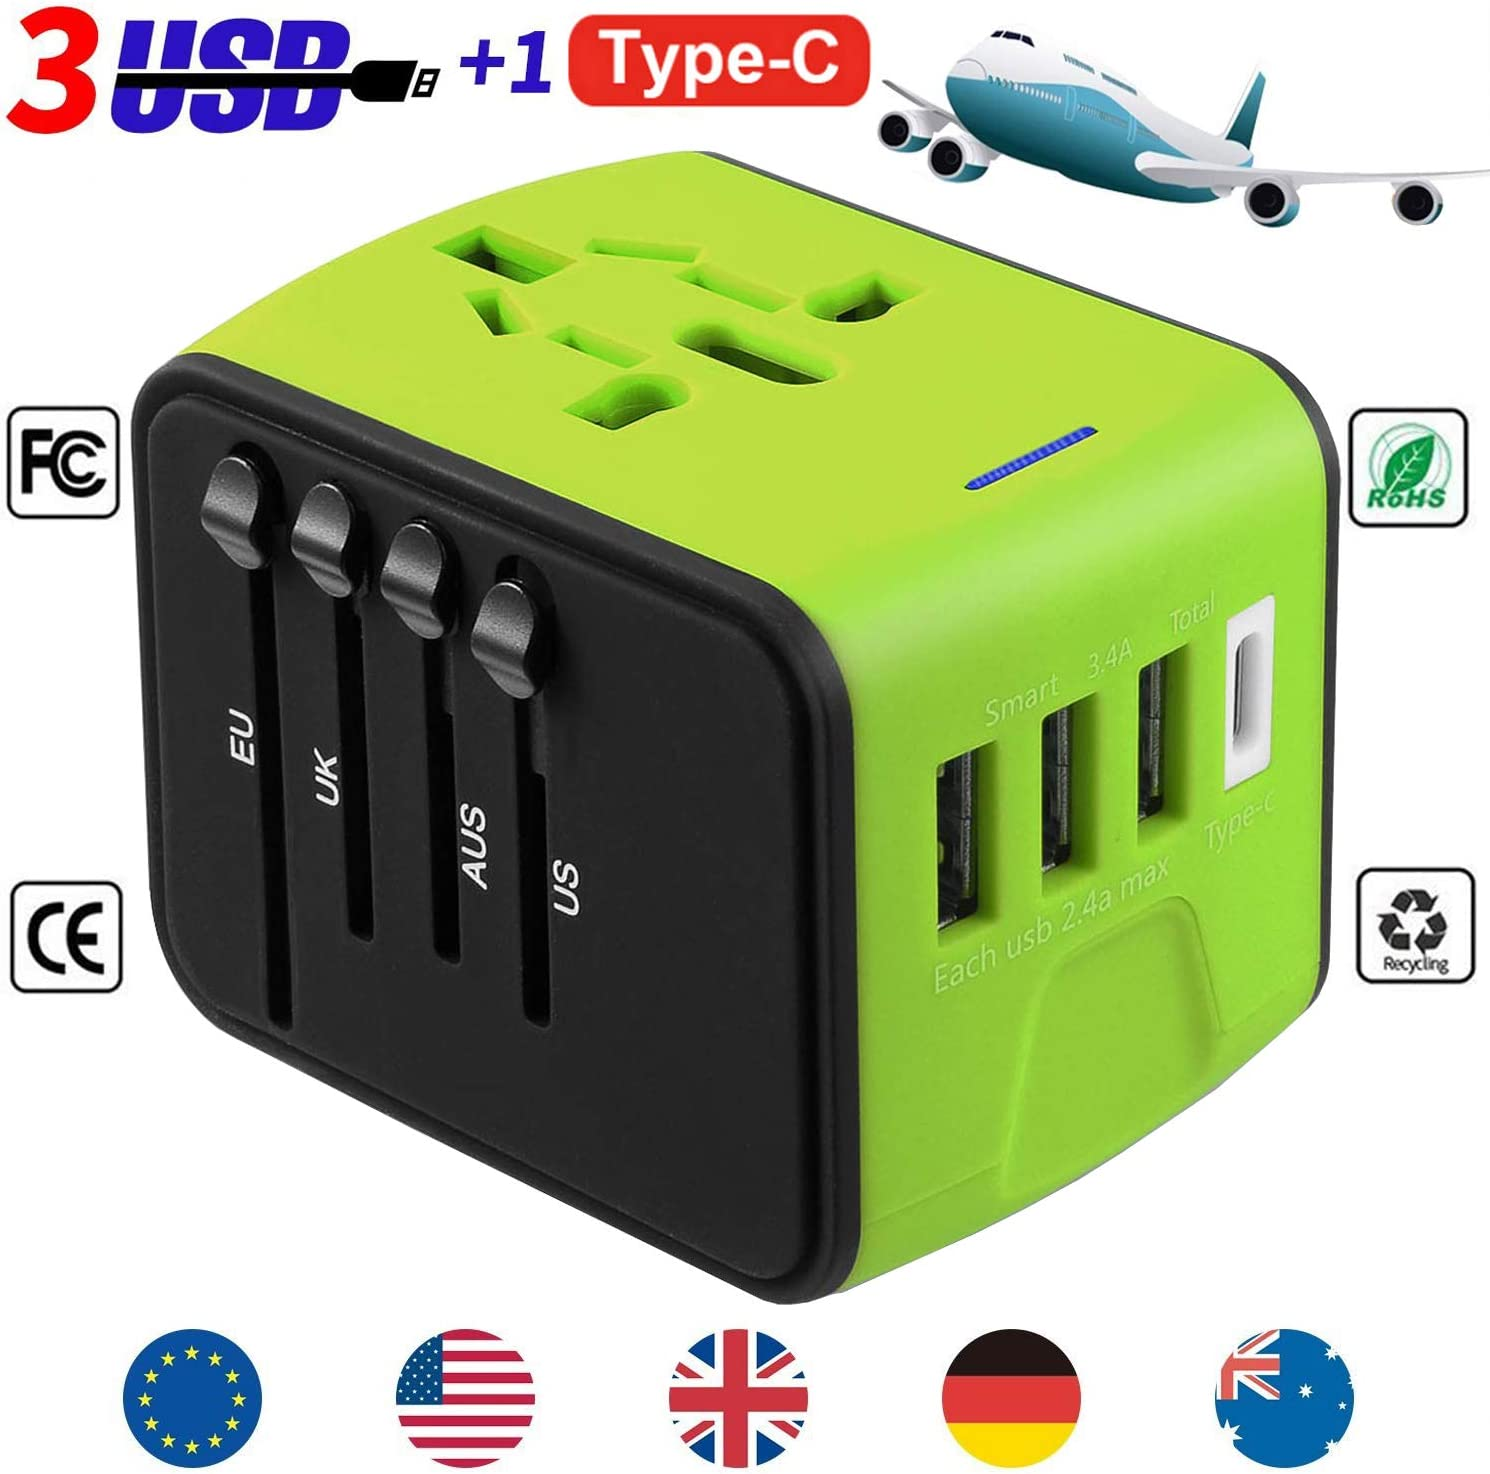 YooGoal Universal Travel Adapter Quick USB Charger with 1 Type C and 3 USB Ports International World Power Plug Adapter Kit Charger USB Plug with UK, EU, AU, CN,US for 200 Countries (Green)